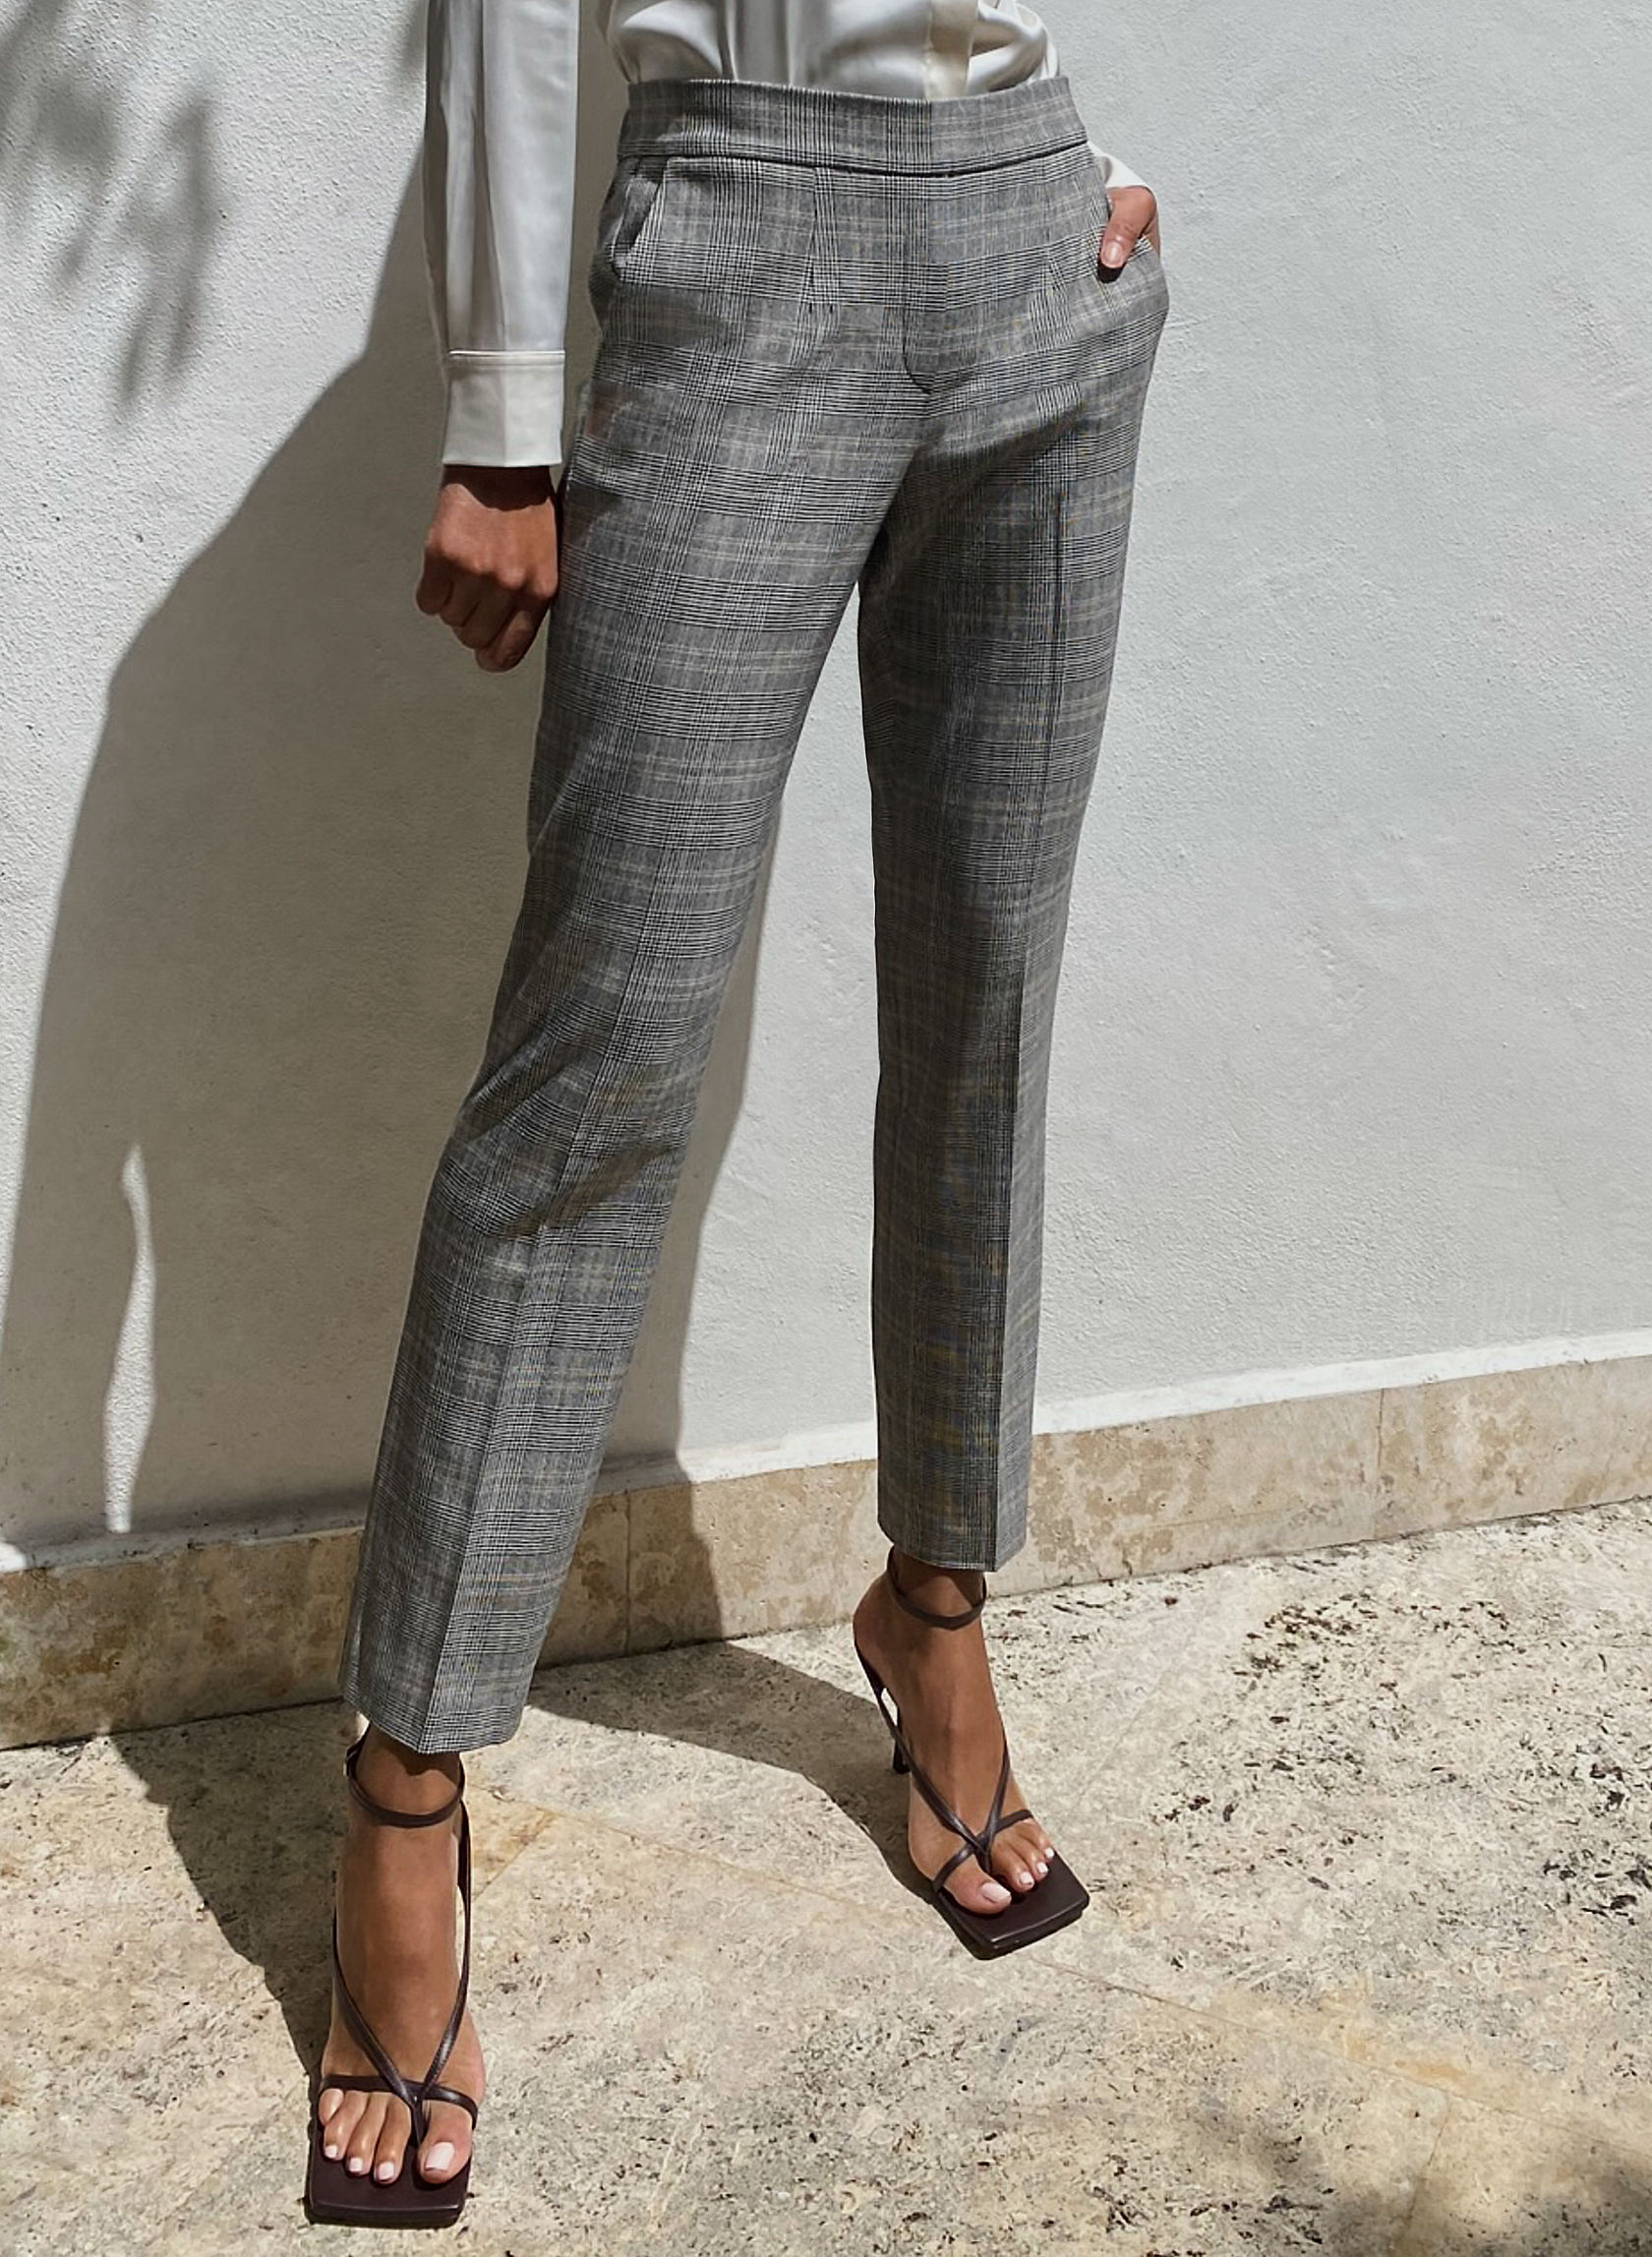 CONAN LONG PANT - Pull-on plaid trousers